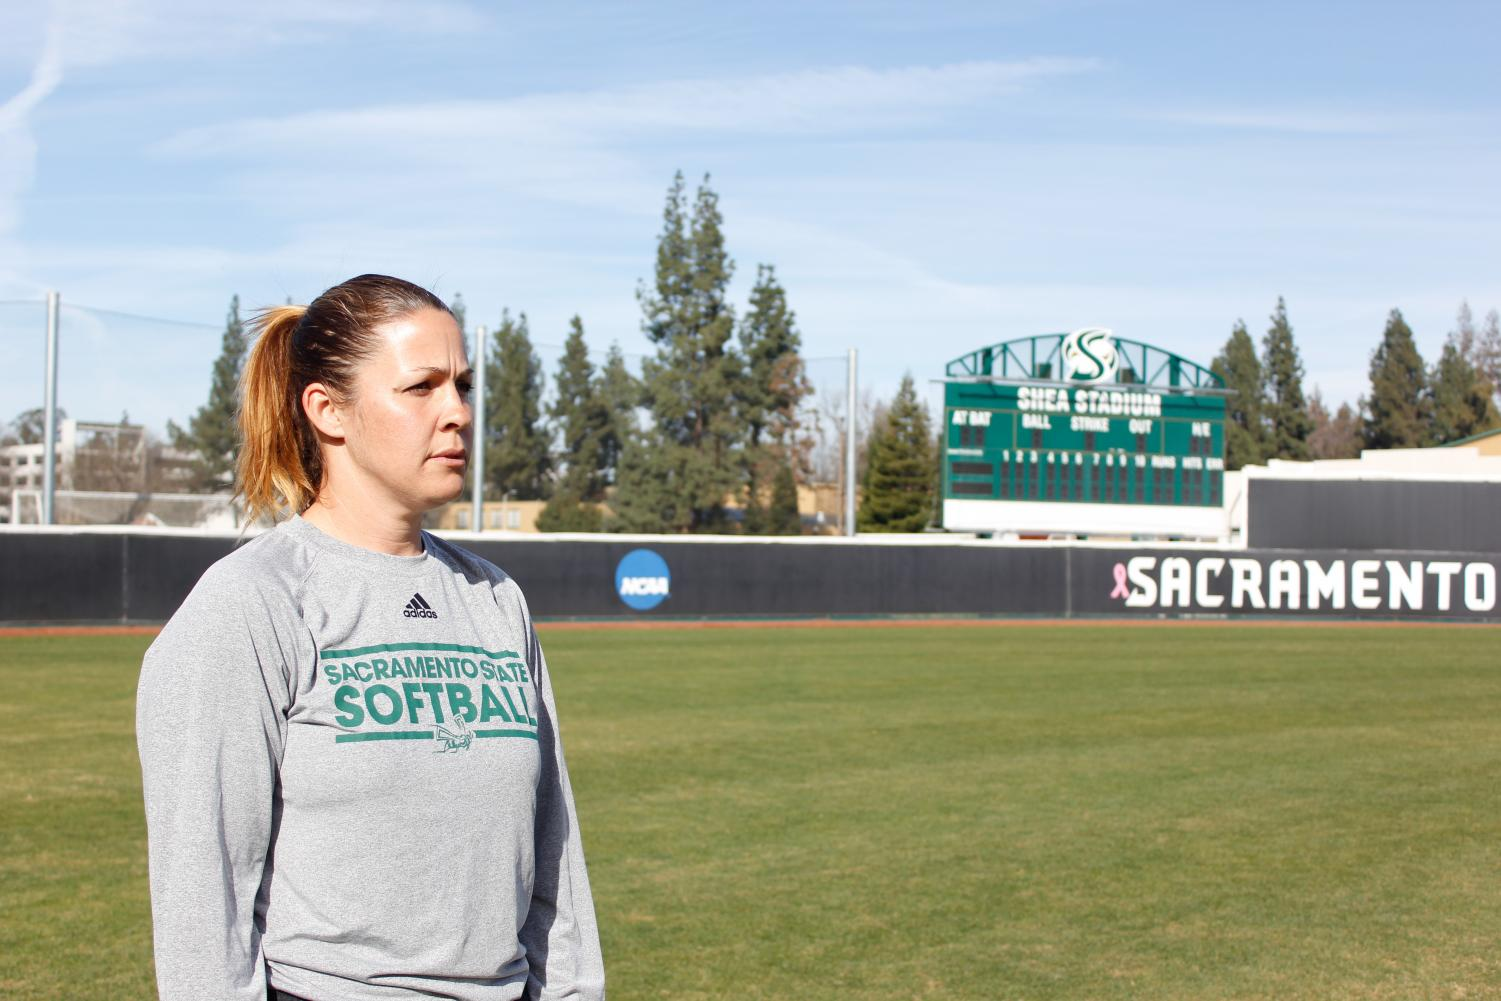 Sacramento State softball coach Lori Perez looks upon the softball field before the start of practice on Thursday, Feb. 1 at Shea Stadium. Perez enters this season in her fifth year as head coach after spending multiple years as a player (1999-2002) and assistant coach (2005-13) at Sac State.